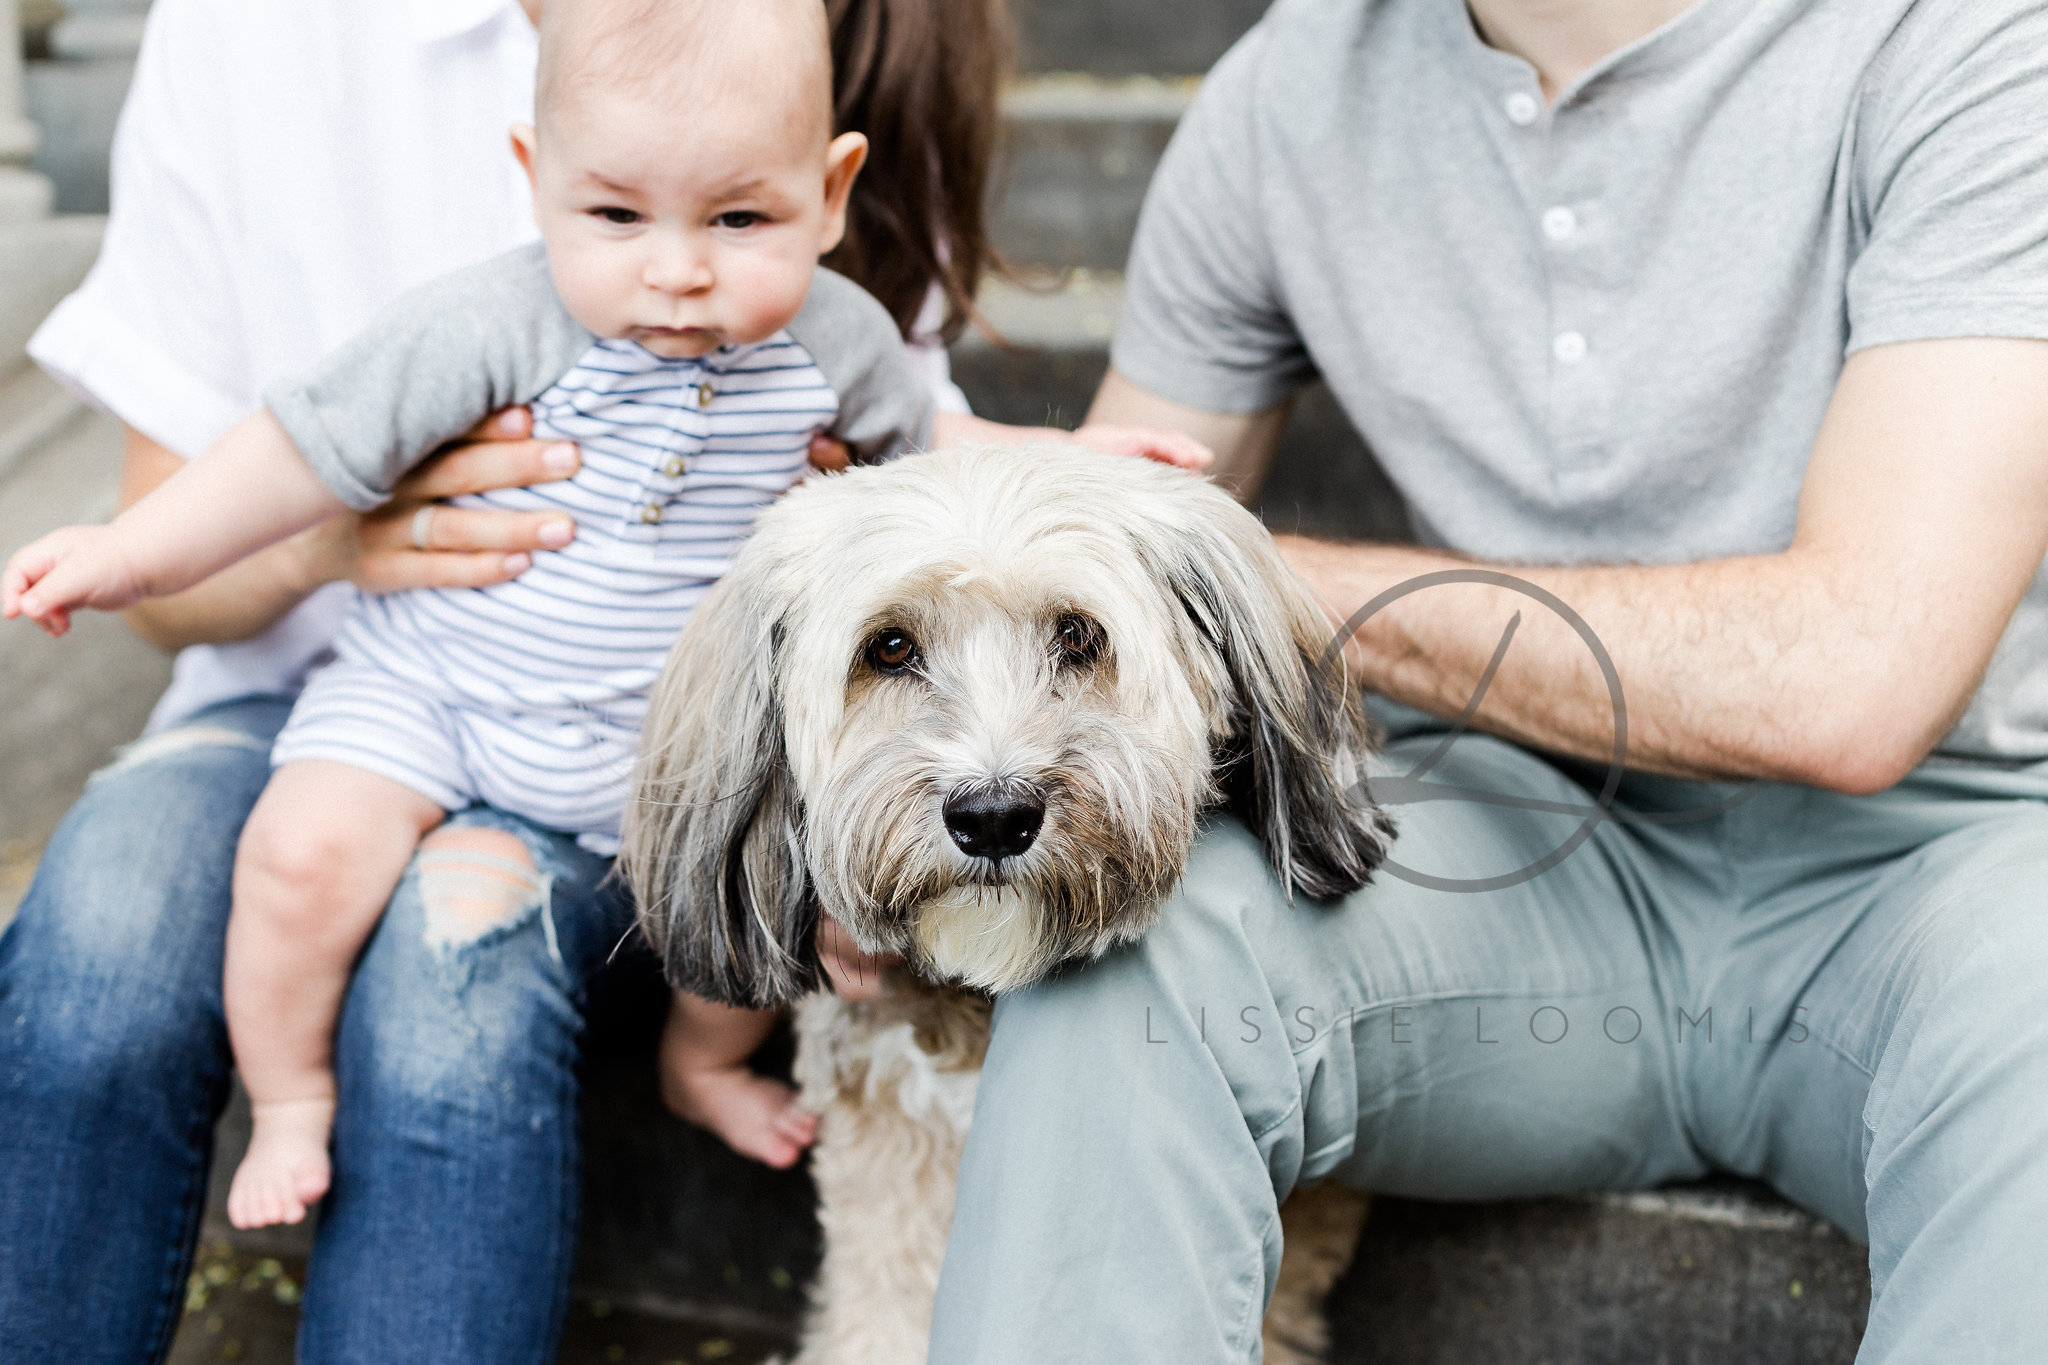 lissie-loomis-photo-newyorkcity-family-photography-baby-photographer-brooklyn58.JPG